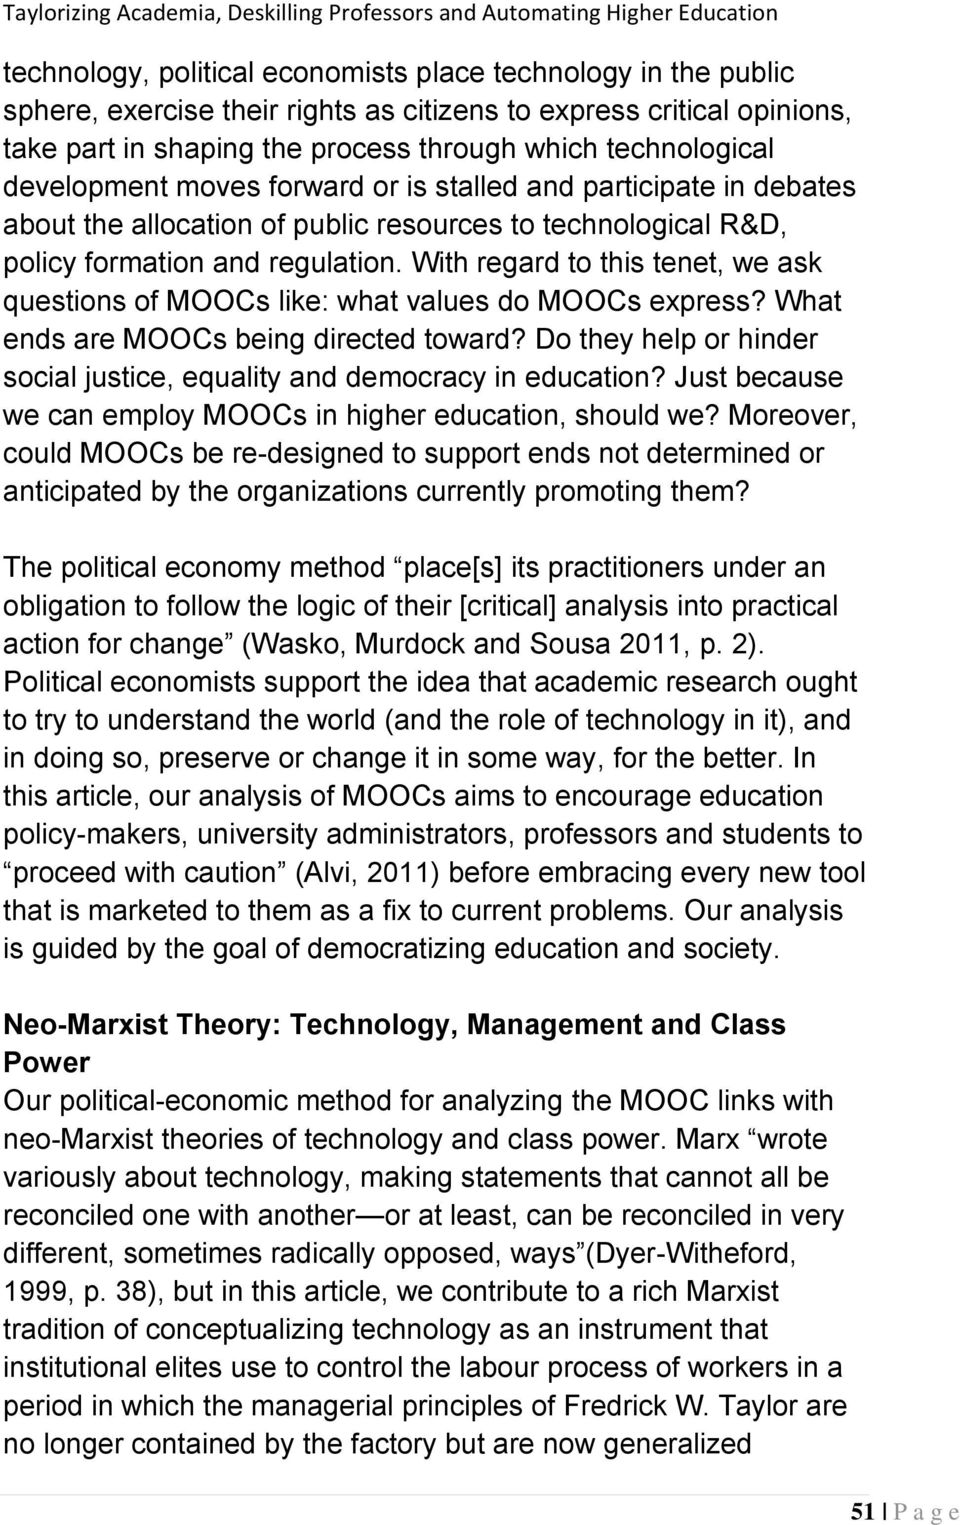 With regard to this tenet, we ask questions of MOOCs like: what values do MOOCs express? What ends are MOOCs being directed toward?